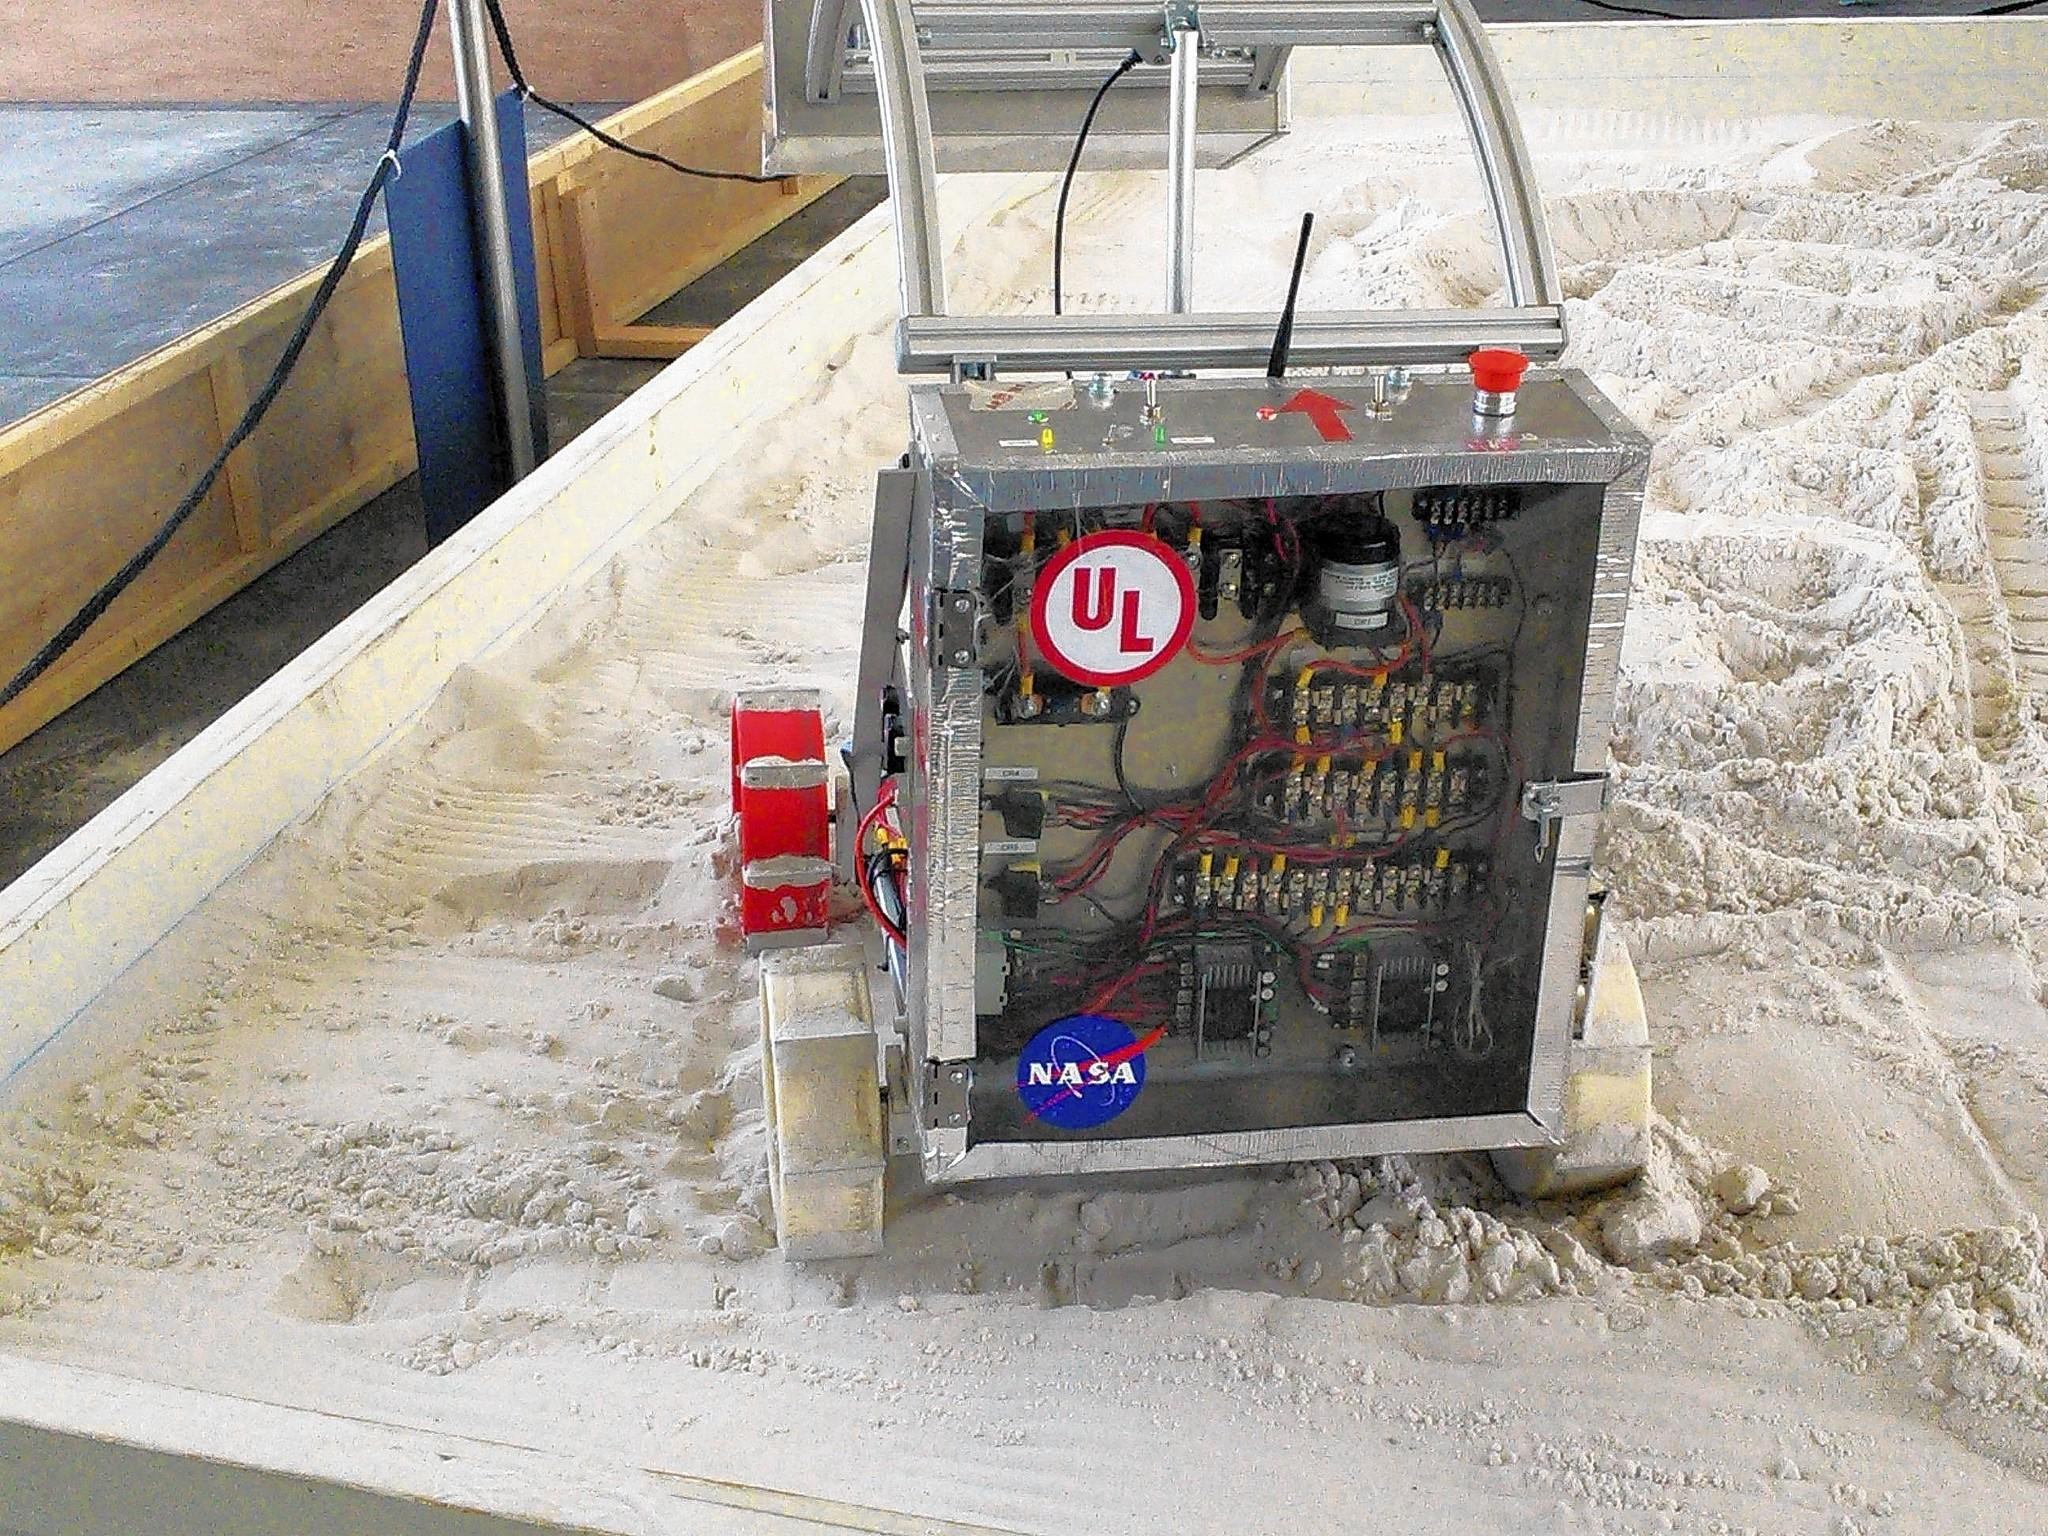 """""""Oaktimus Prime,"""" a remote-controlled excavator designed by students at Oakton Community College, competed at the annual NASA Robotic Mining Competition in Florida."""